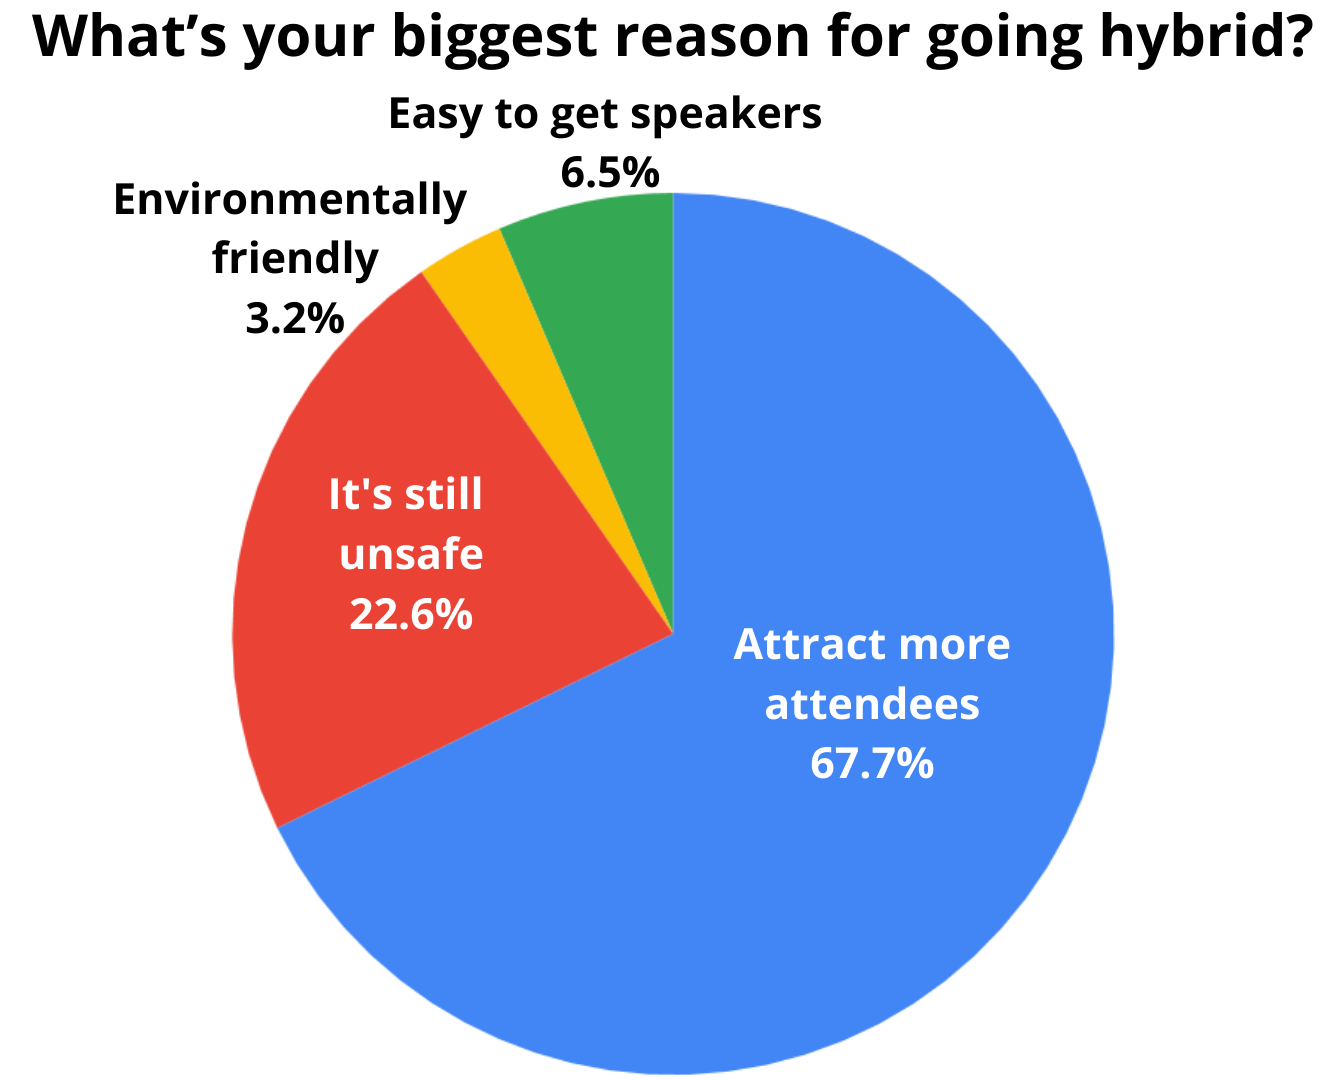 67.7% of organizers say they went hybrid to attract more attendees